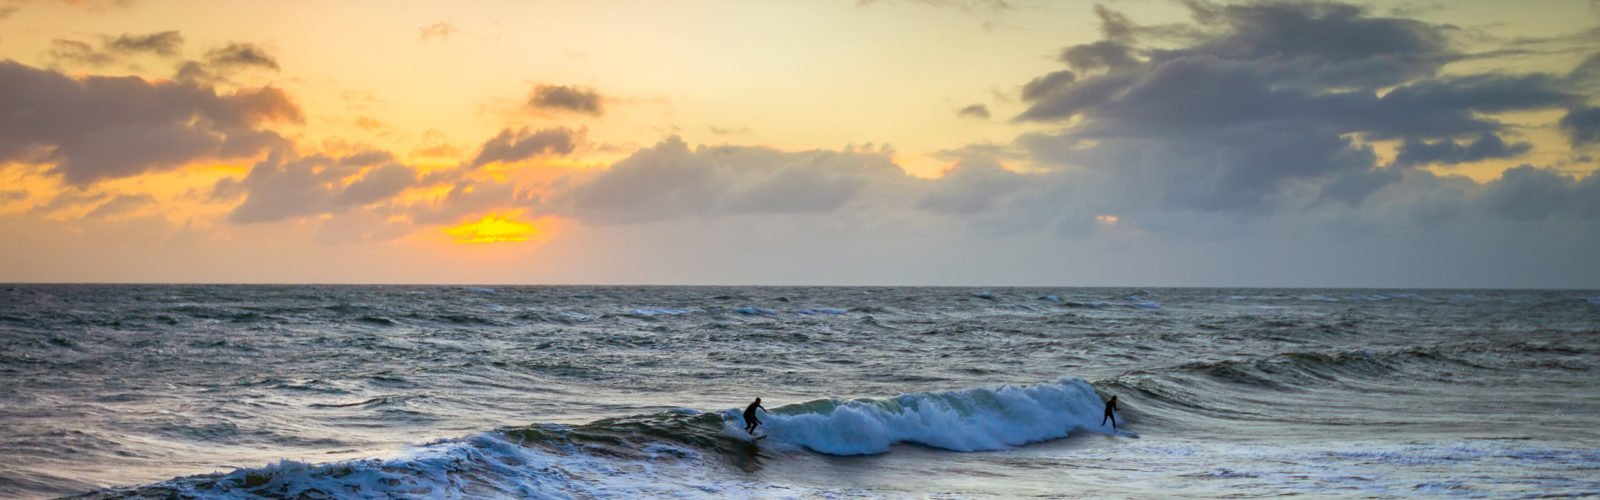 surfers-riding-waves-sunset